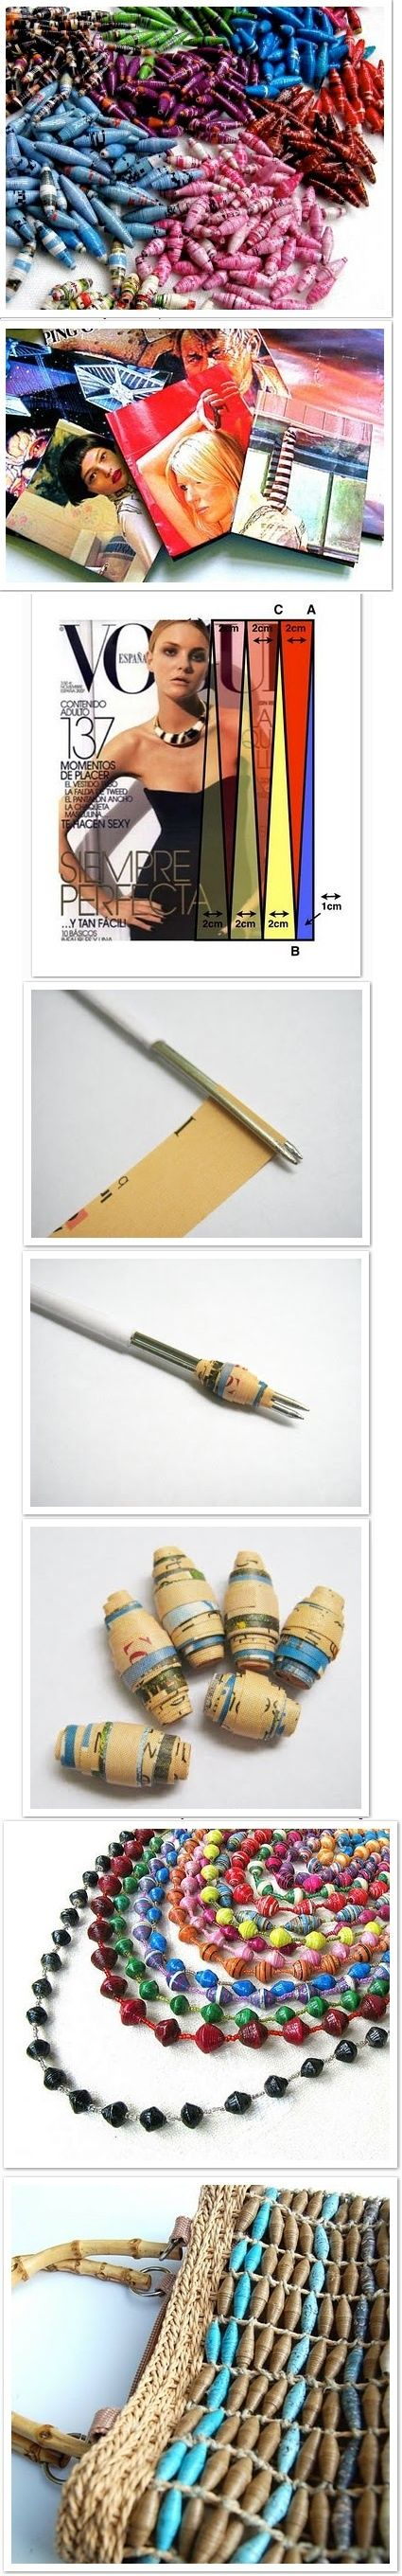 Beads paper - Recycling 1 Fan the paper.  Magazine is the best option.  2- Cut long triangles with a minimum base of 2 cm.3- Apply glue on paper, wrap with palito.4- Keep the tip of the triangle in the middle of the bead.  Here, it was used a second tool tips.  The basic is to use a barbecue stick.  -Pass A light acrylic sealant layer and make them more durable;  -Paint with gouache paint;  -Enrole Beads with glue and glitter, give brightness;  -Use Heavy fabrics and the same technique.